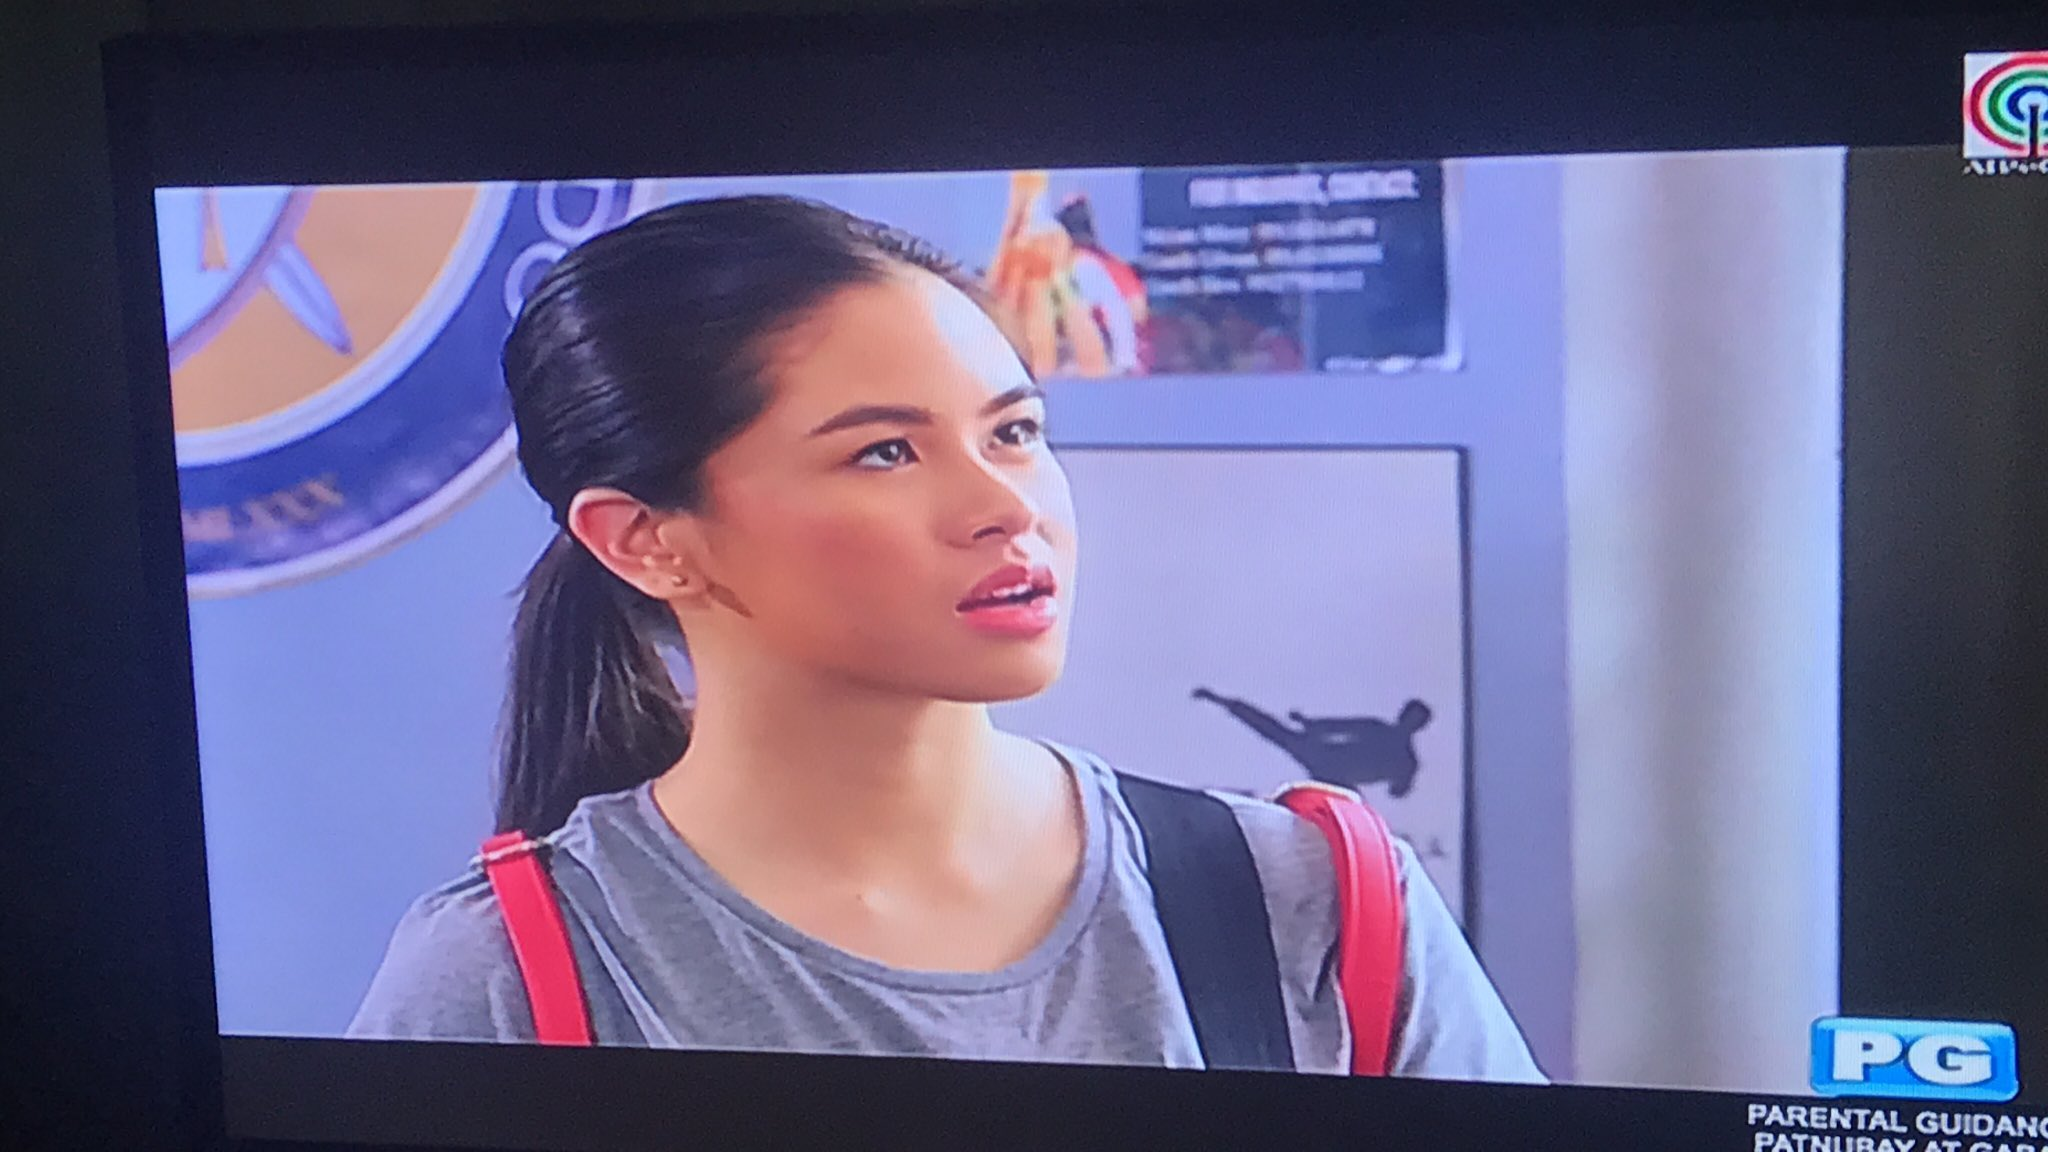 Shiela : Mr. Domingo ang friendship ineearn hindi ineempose   #PlayHouseGiveAndTake @delavinkisses https://t.co/cpfr95X8C1